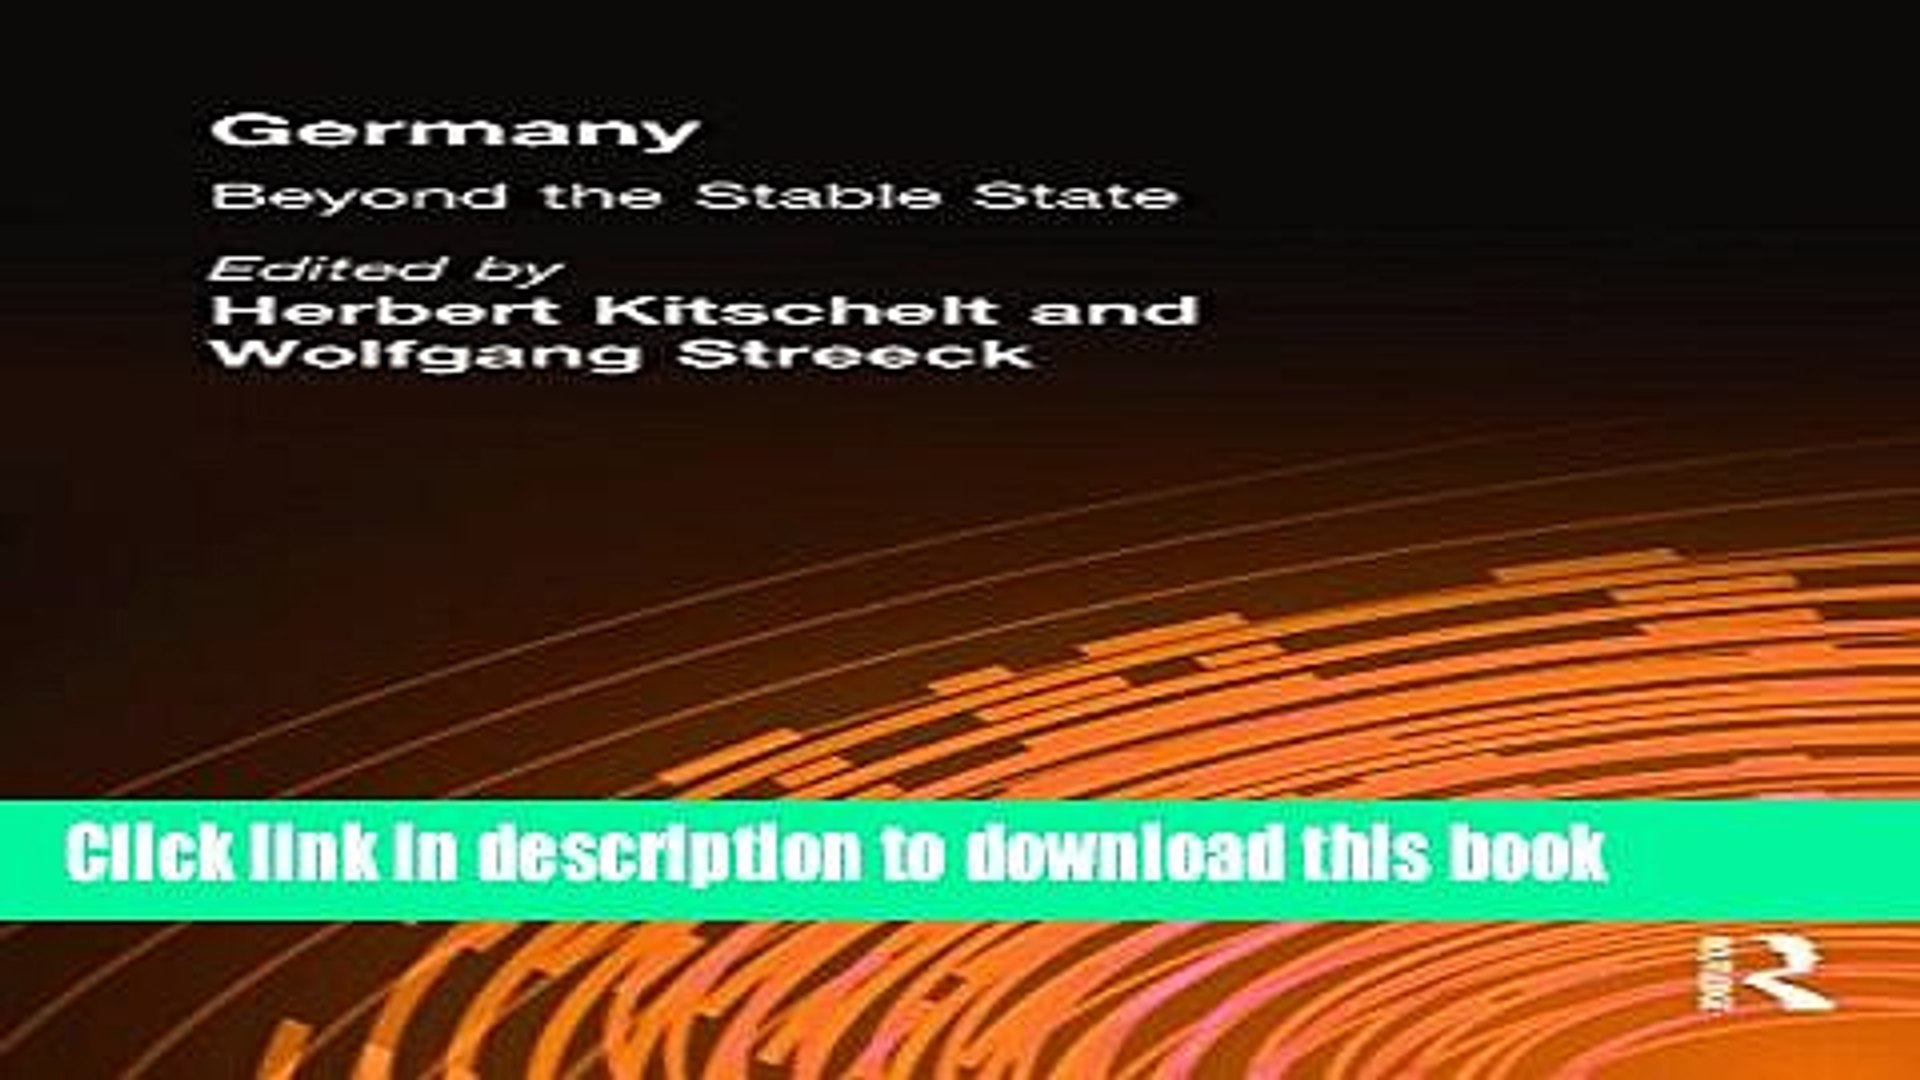 Germany: Beyond the Stable State